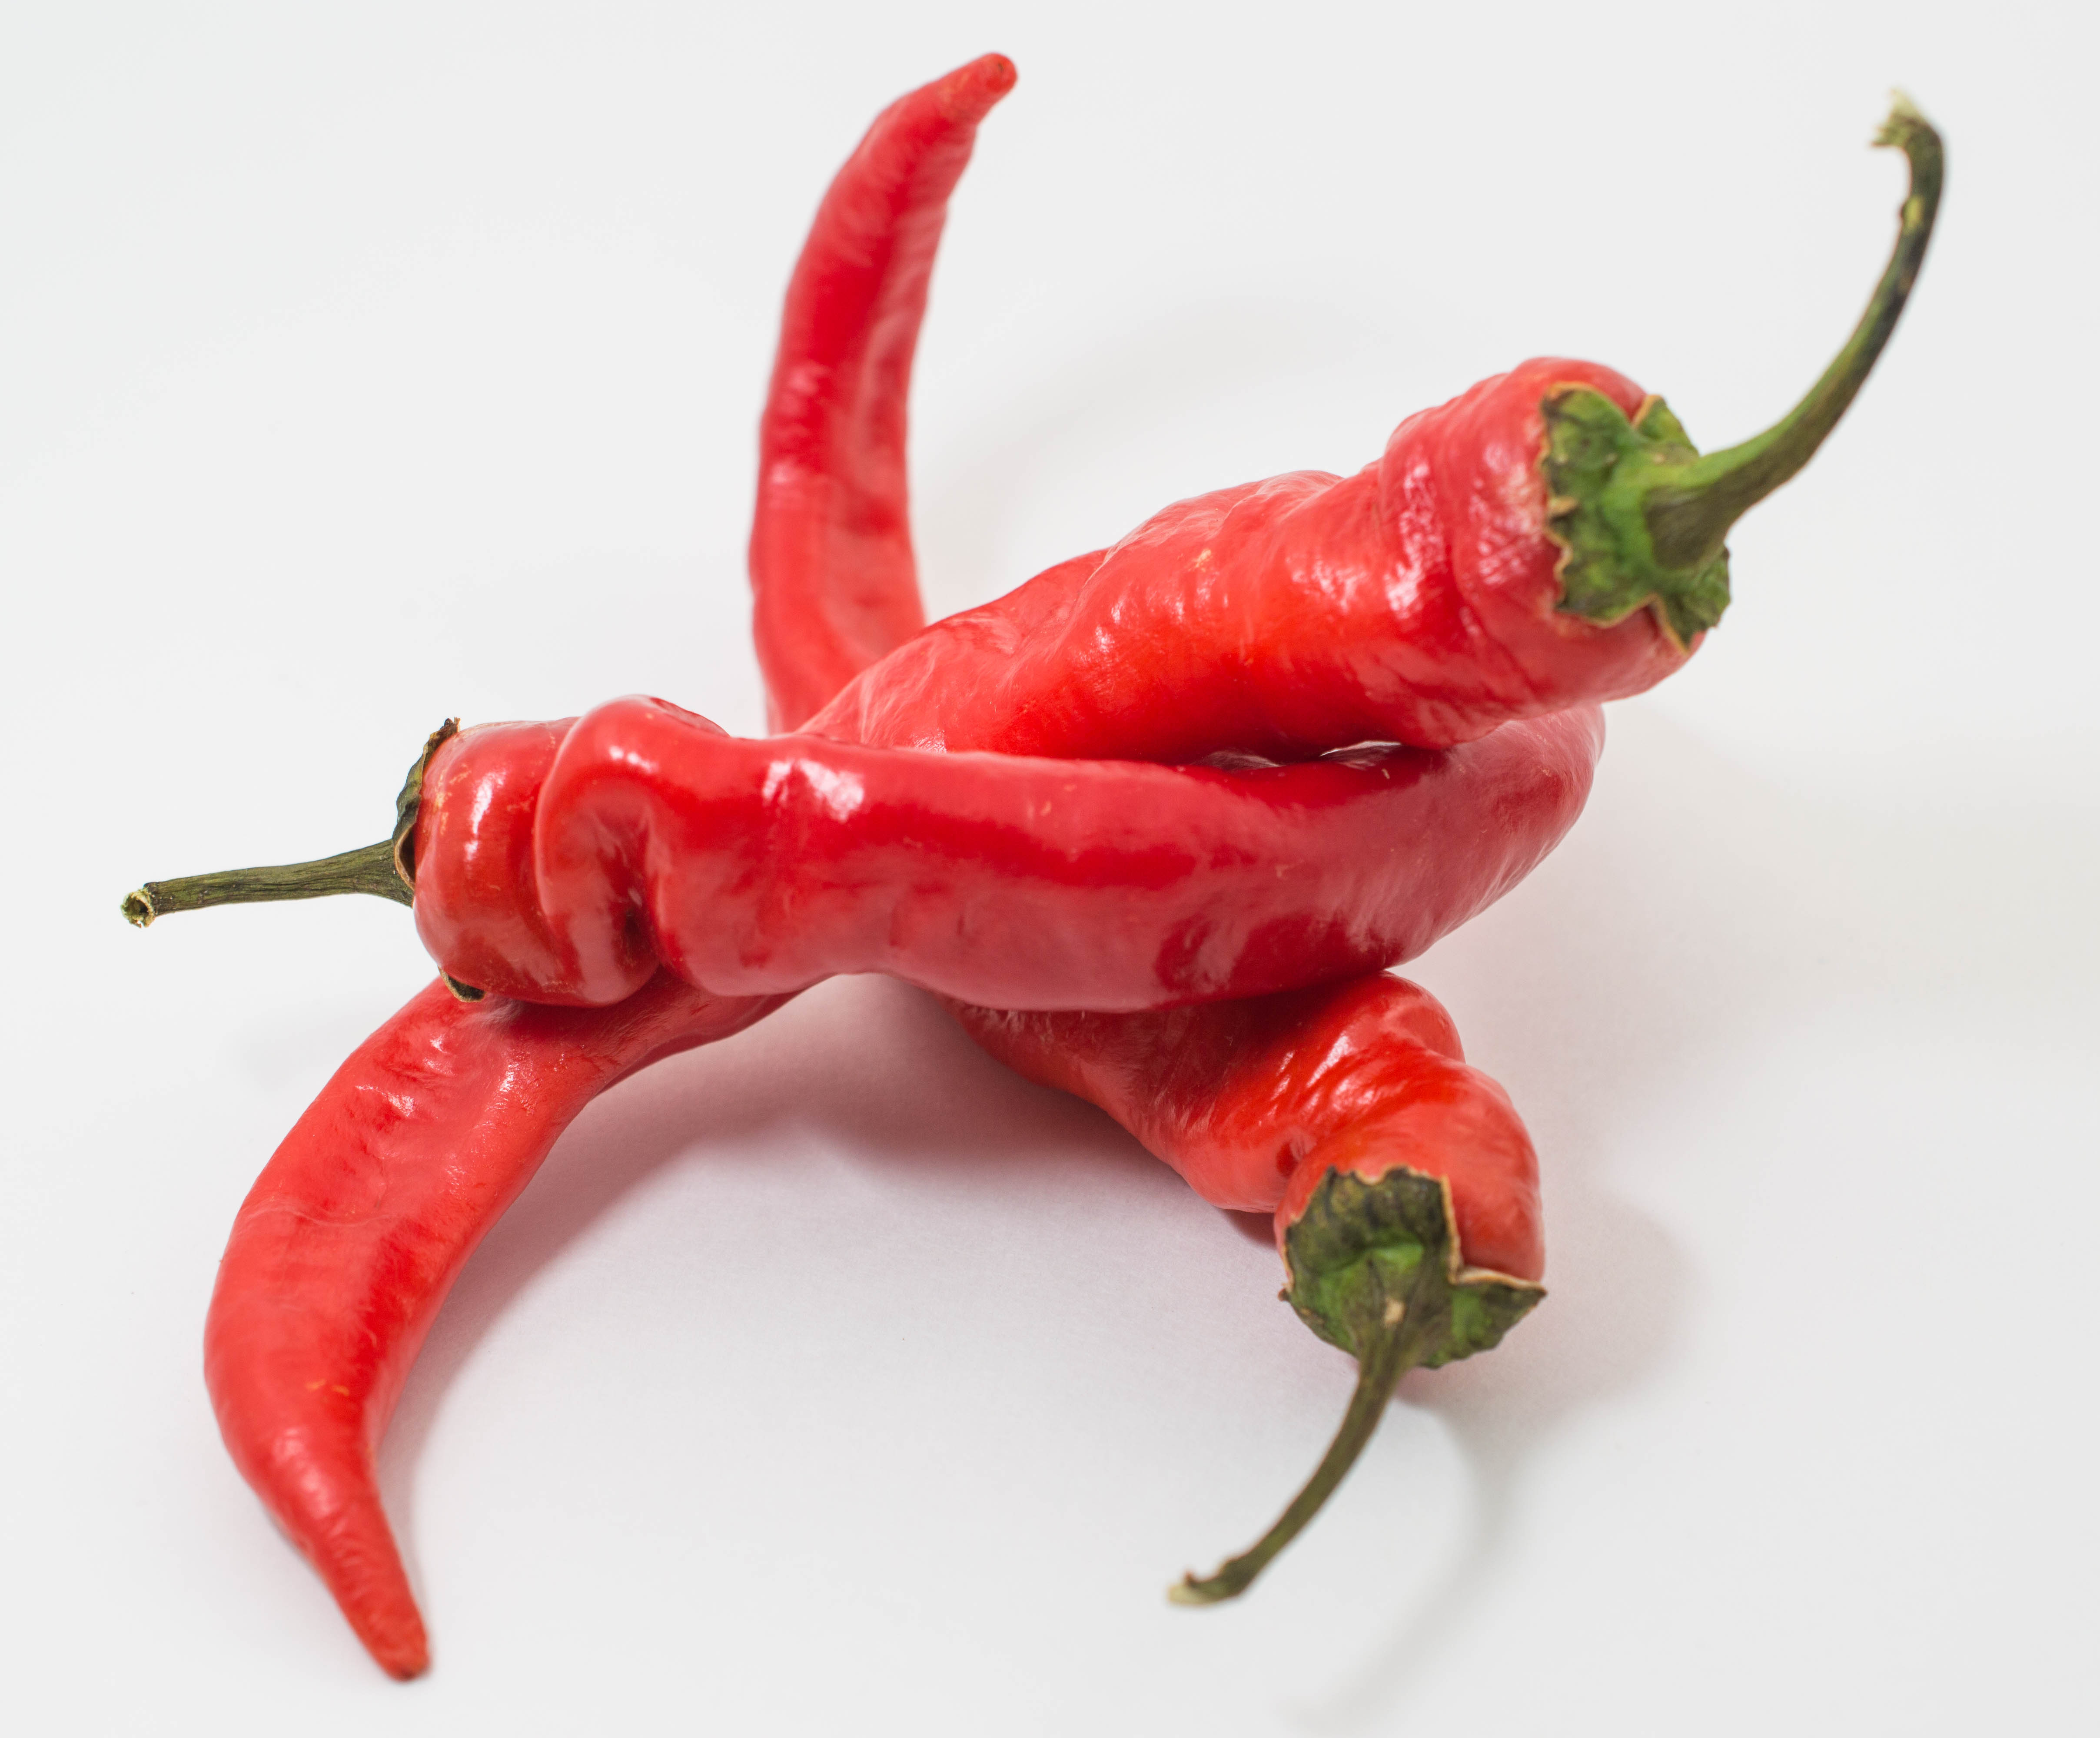 Ingredient Of The Day: Jimmy Nardello Pepper